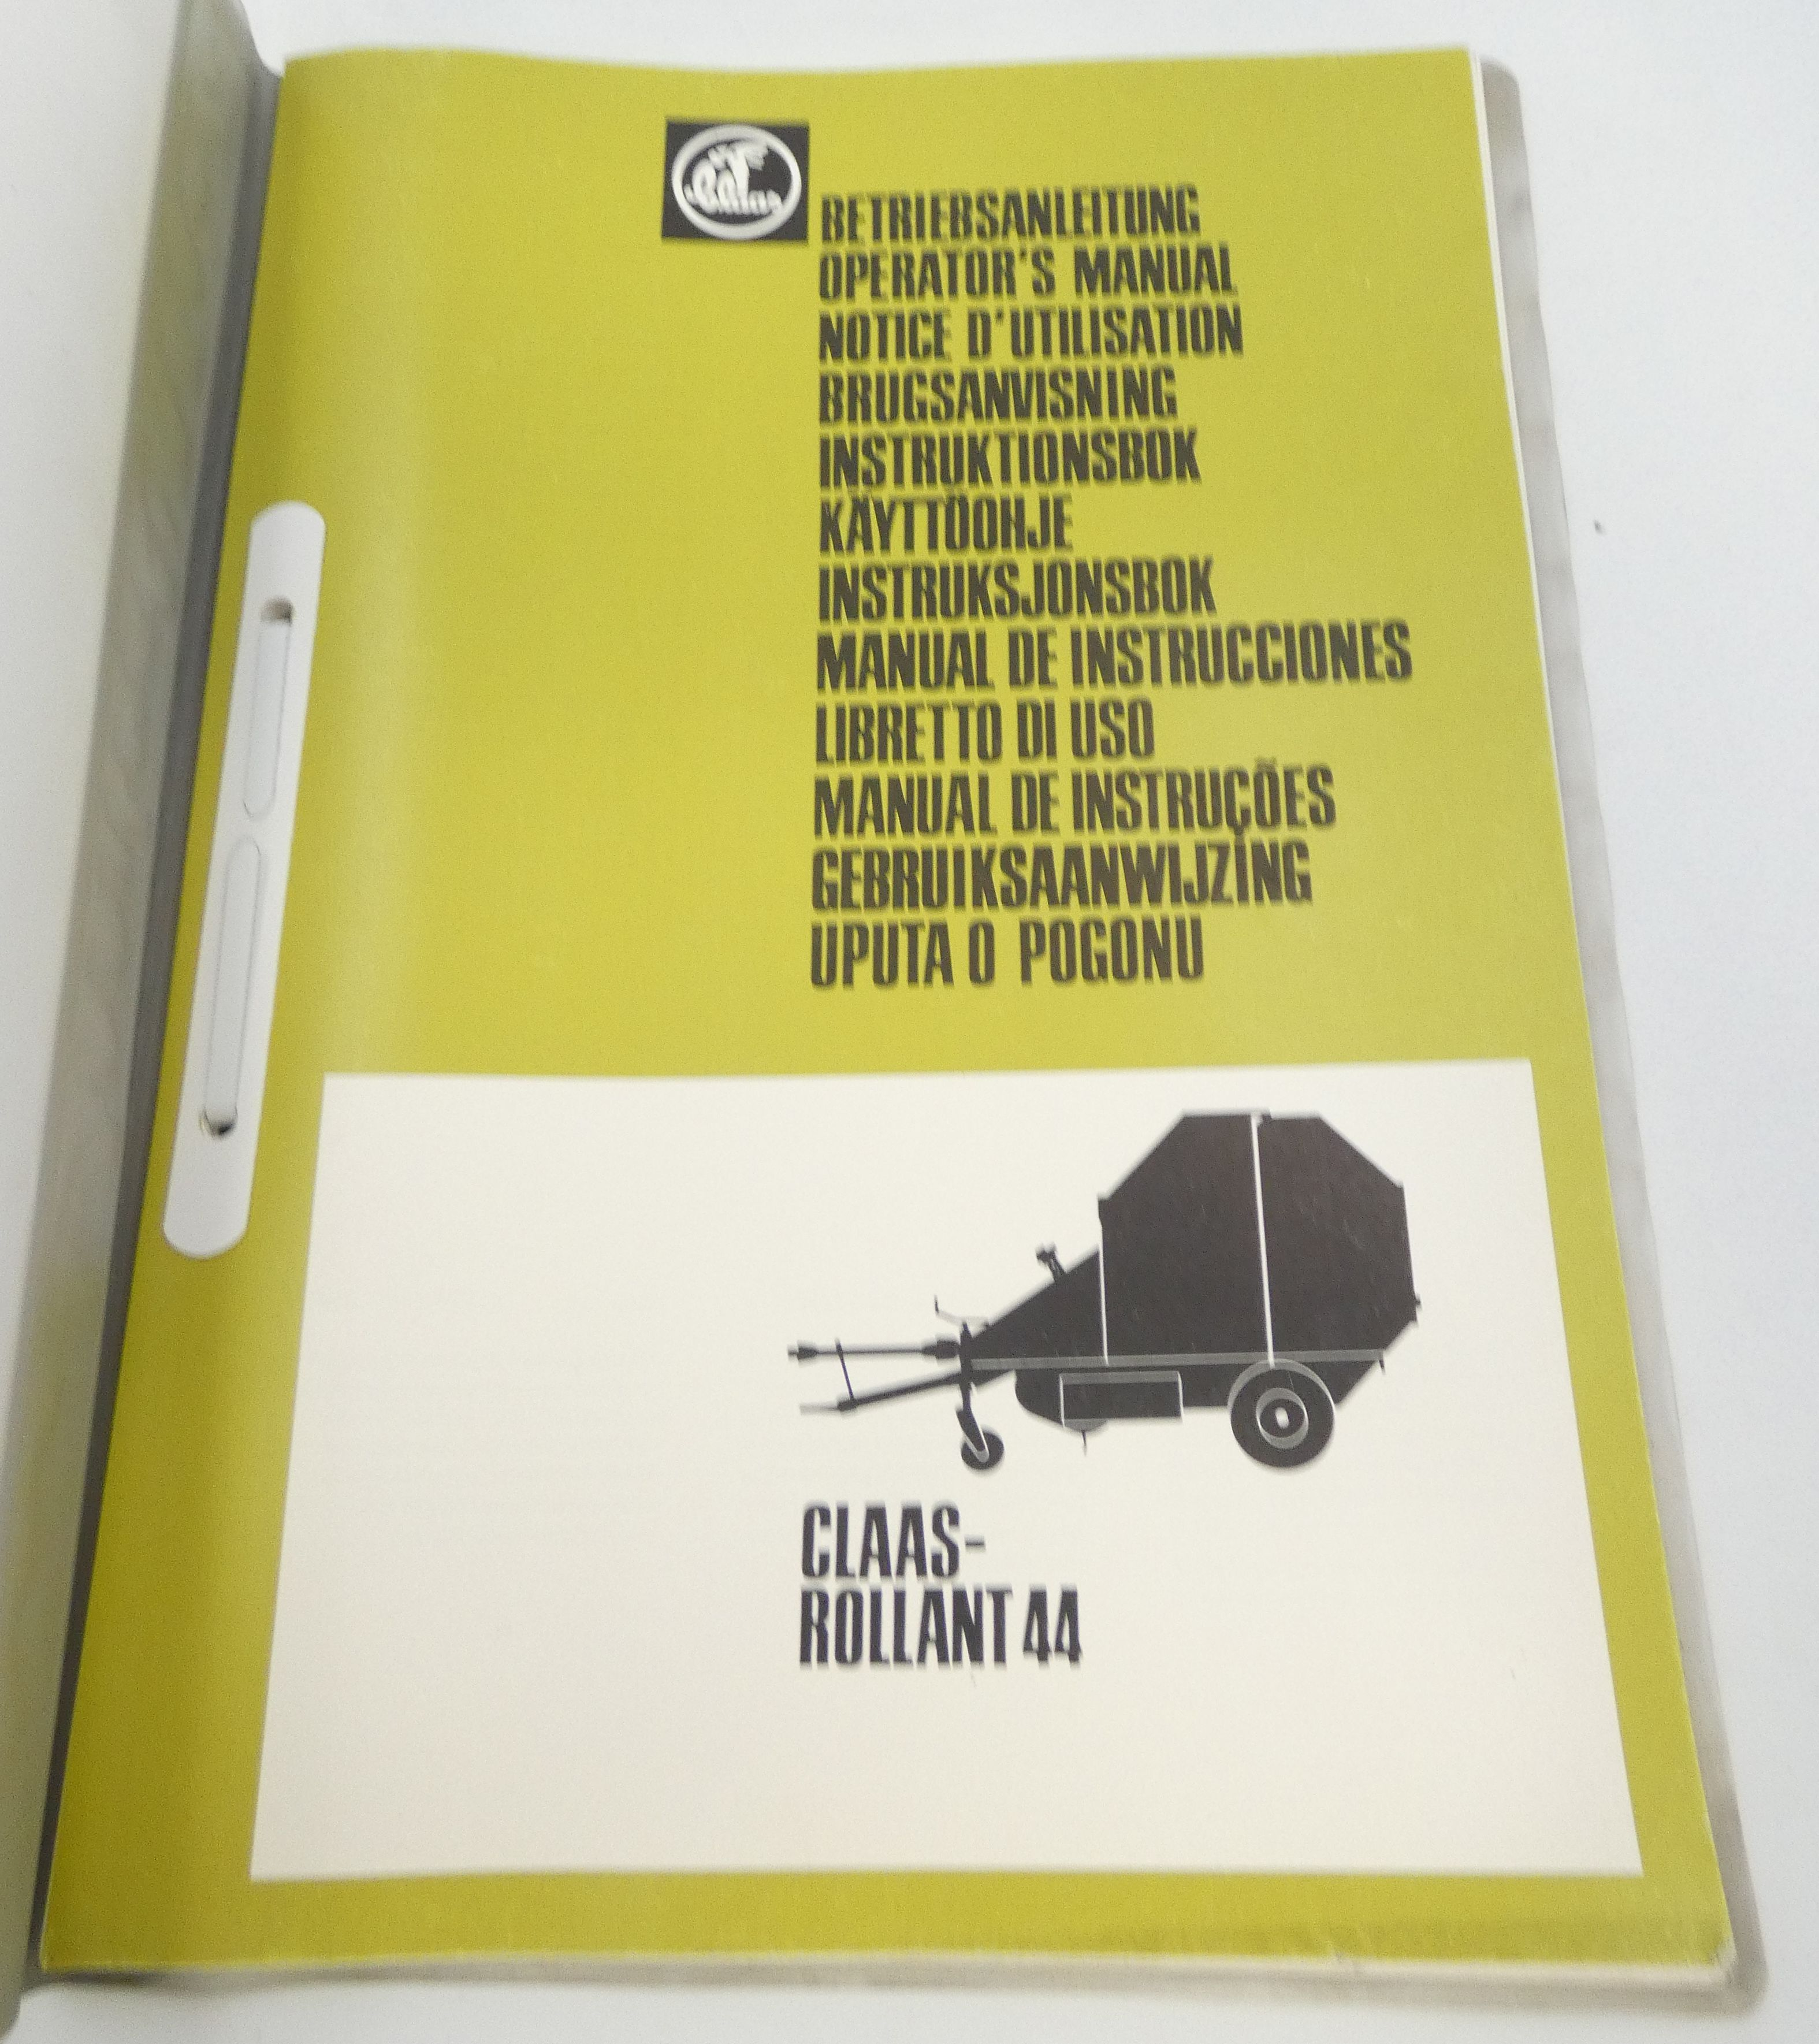 Claas Rollant 44 spare parts list